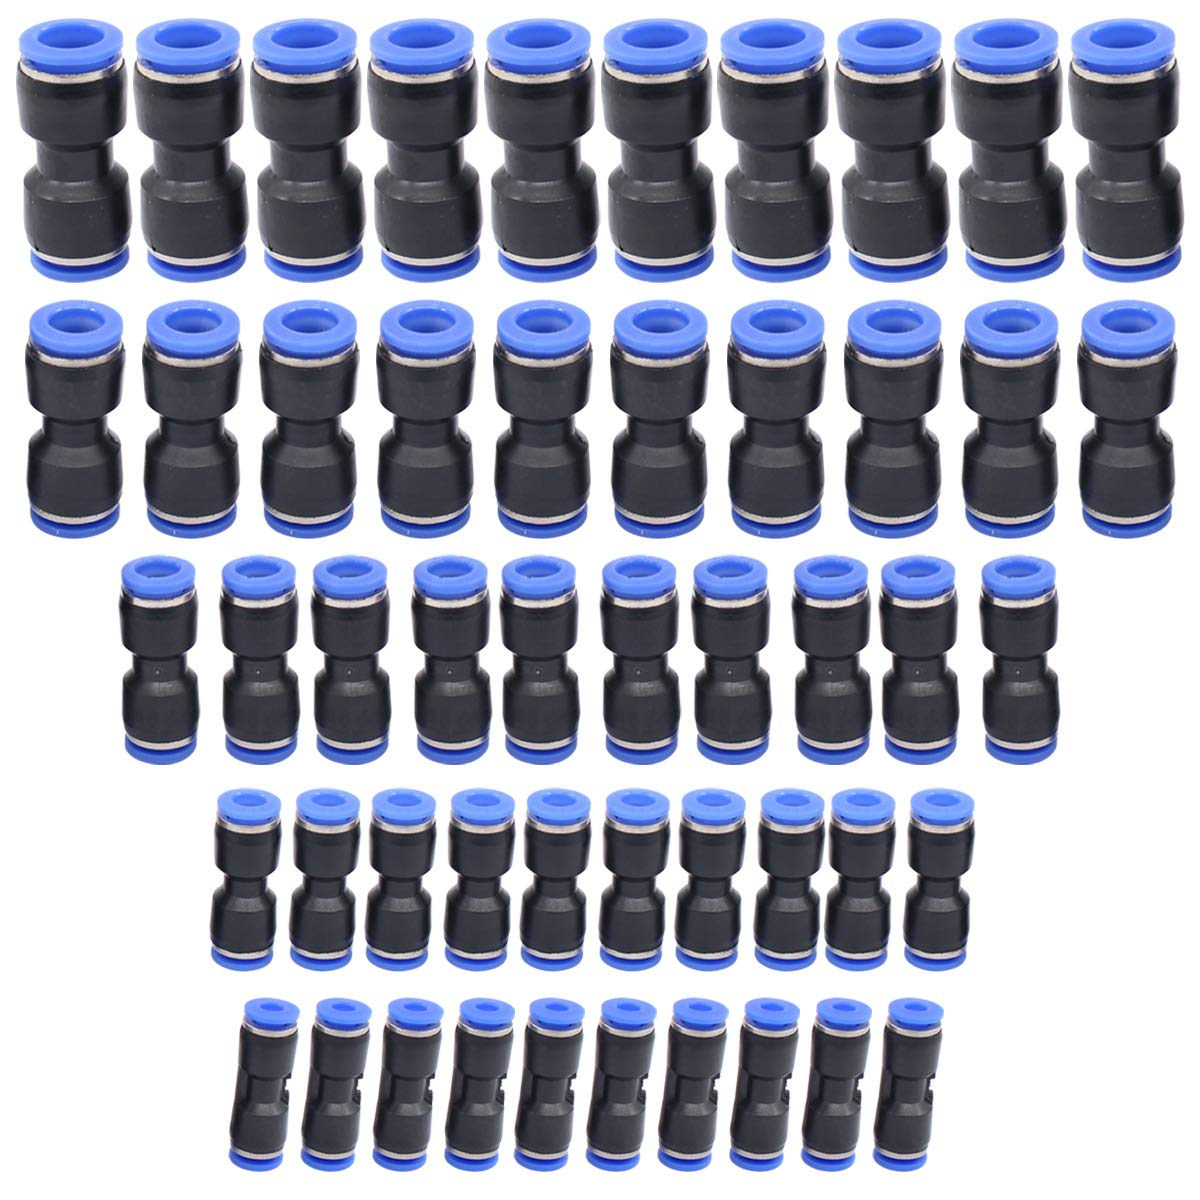 ApplianPar Quick Release Plastic Straight Push to Connect Fittings Kit Air Line Fittings Connectors for 5//32 1//4 5//16 3//8 1//2 Tube 2 Way Pack of 50